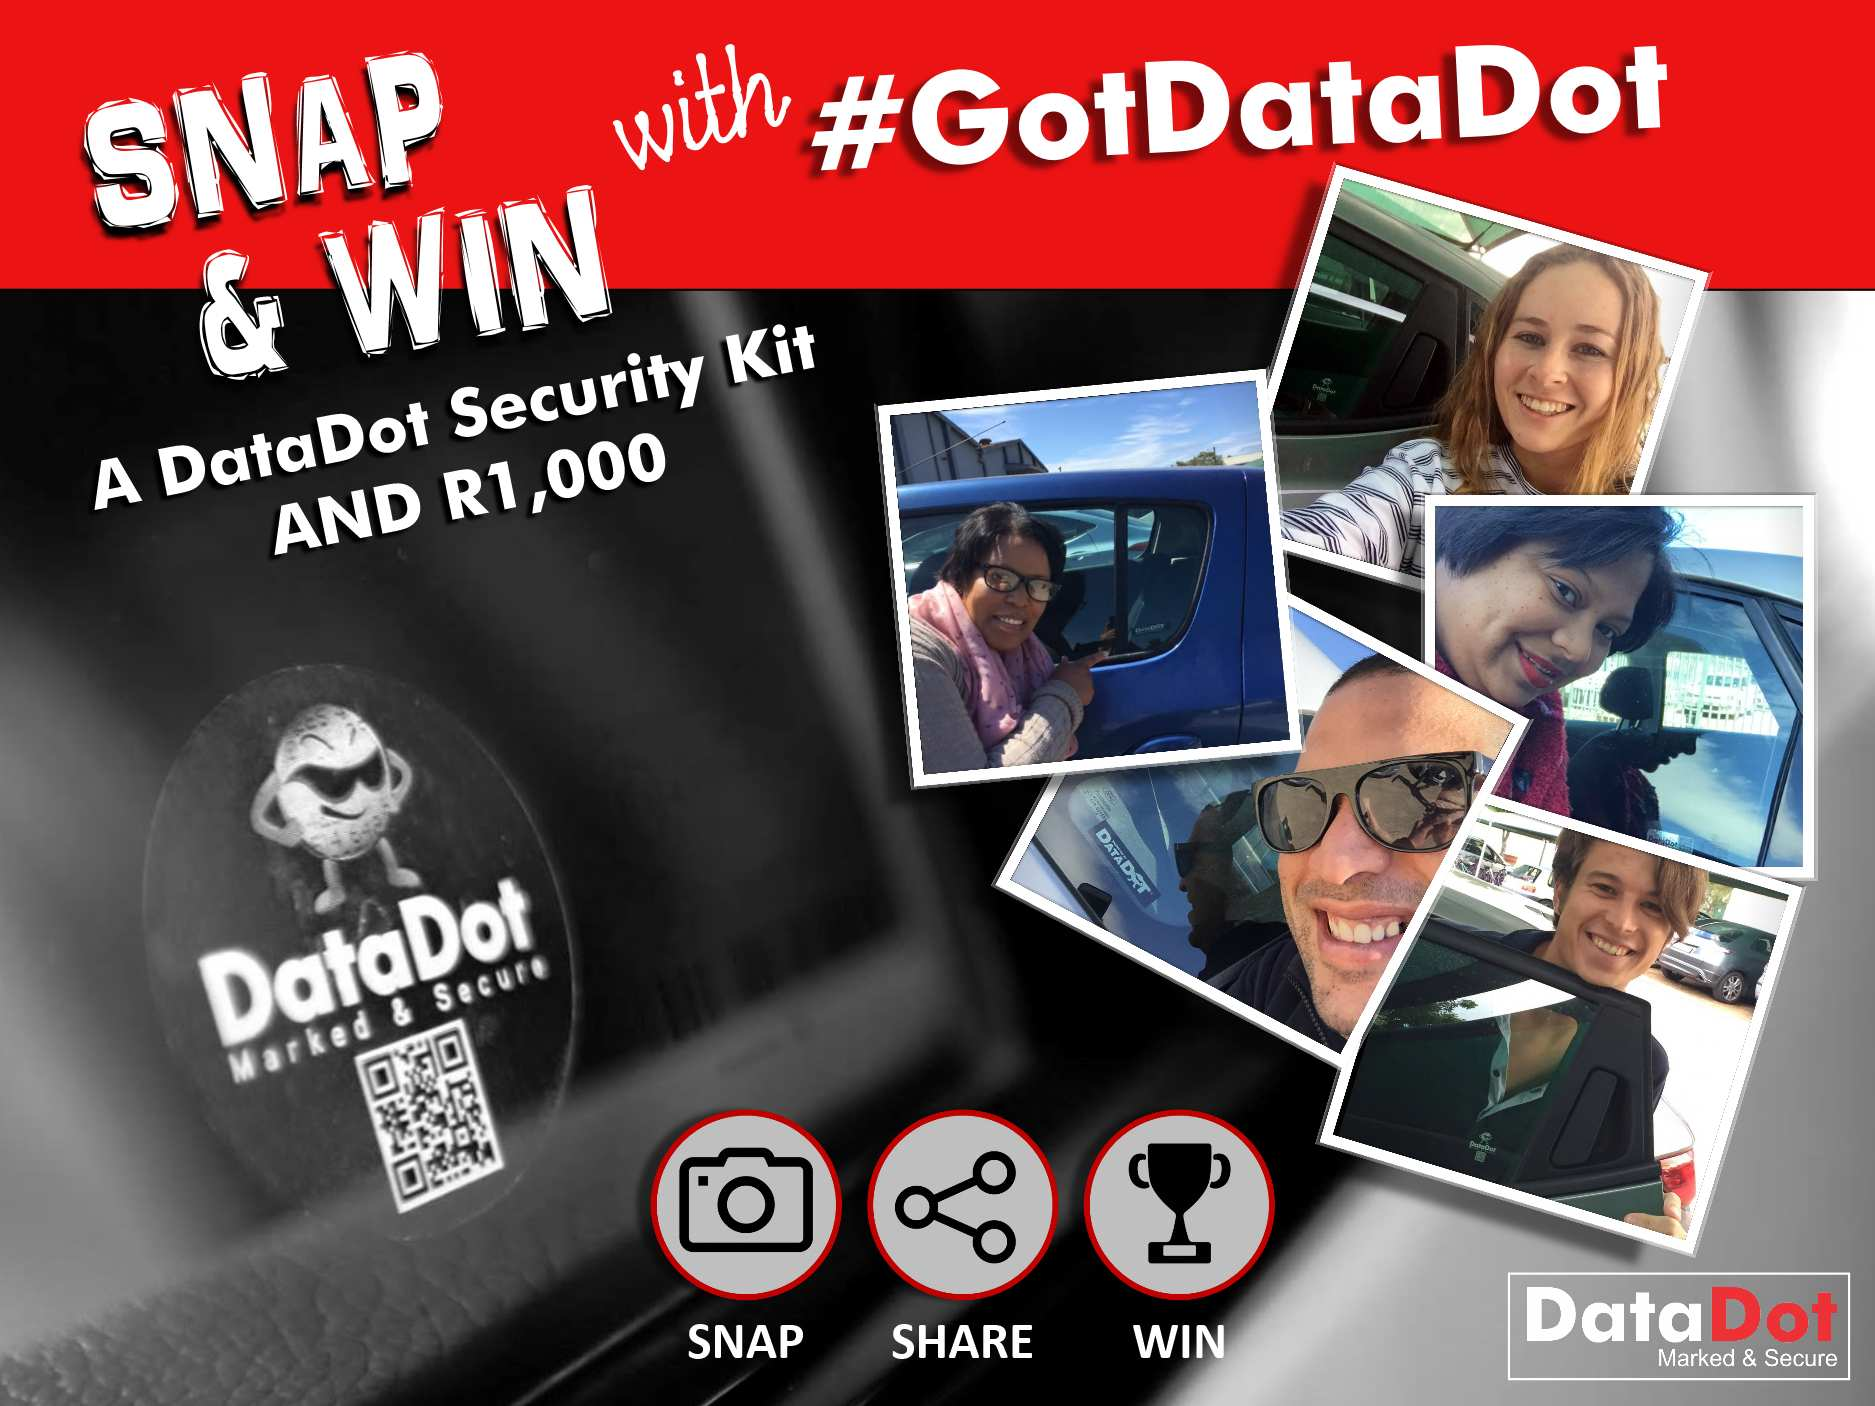 #GotDataDot Photo Contest